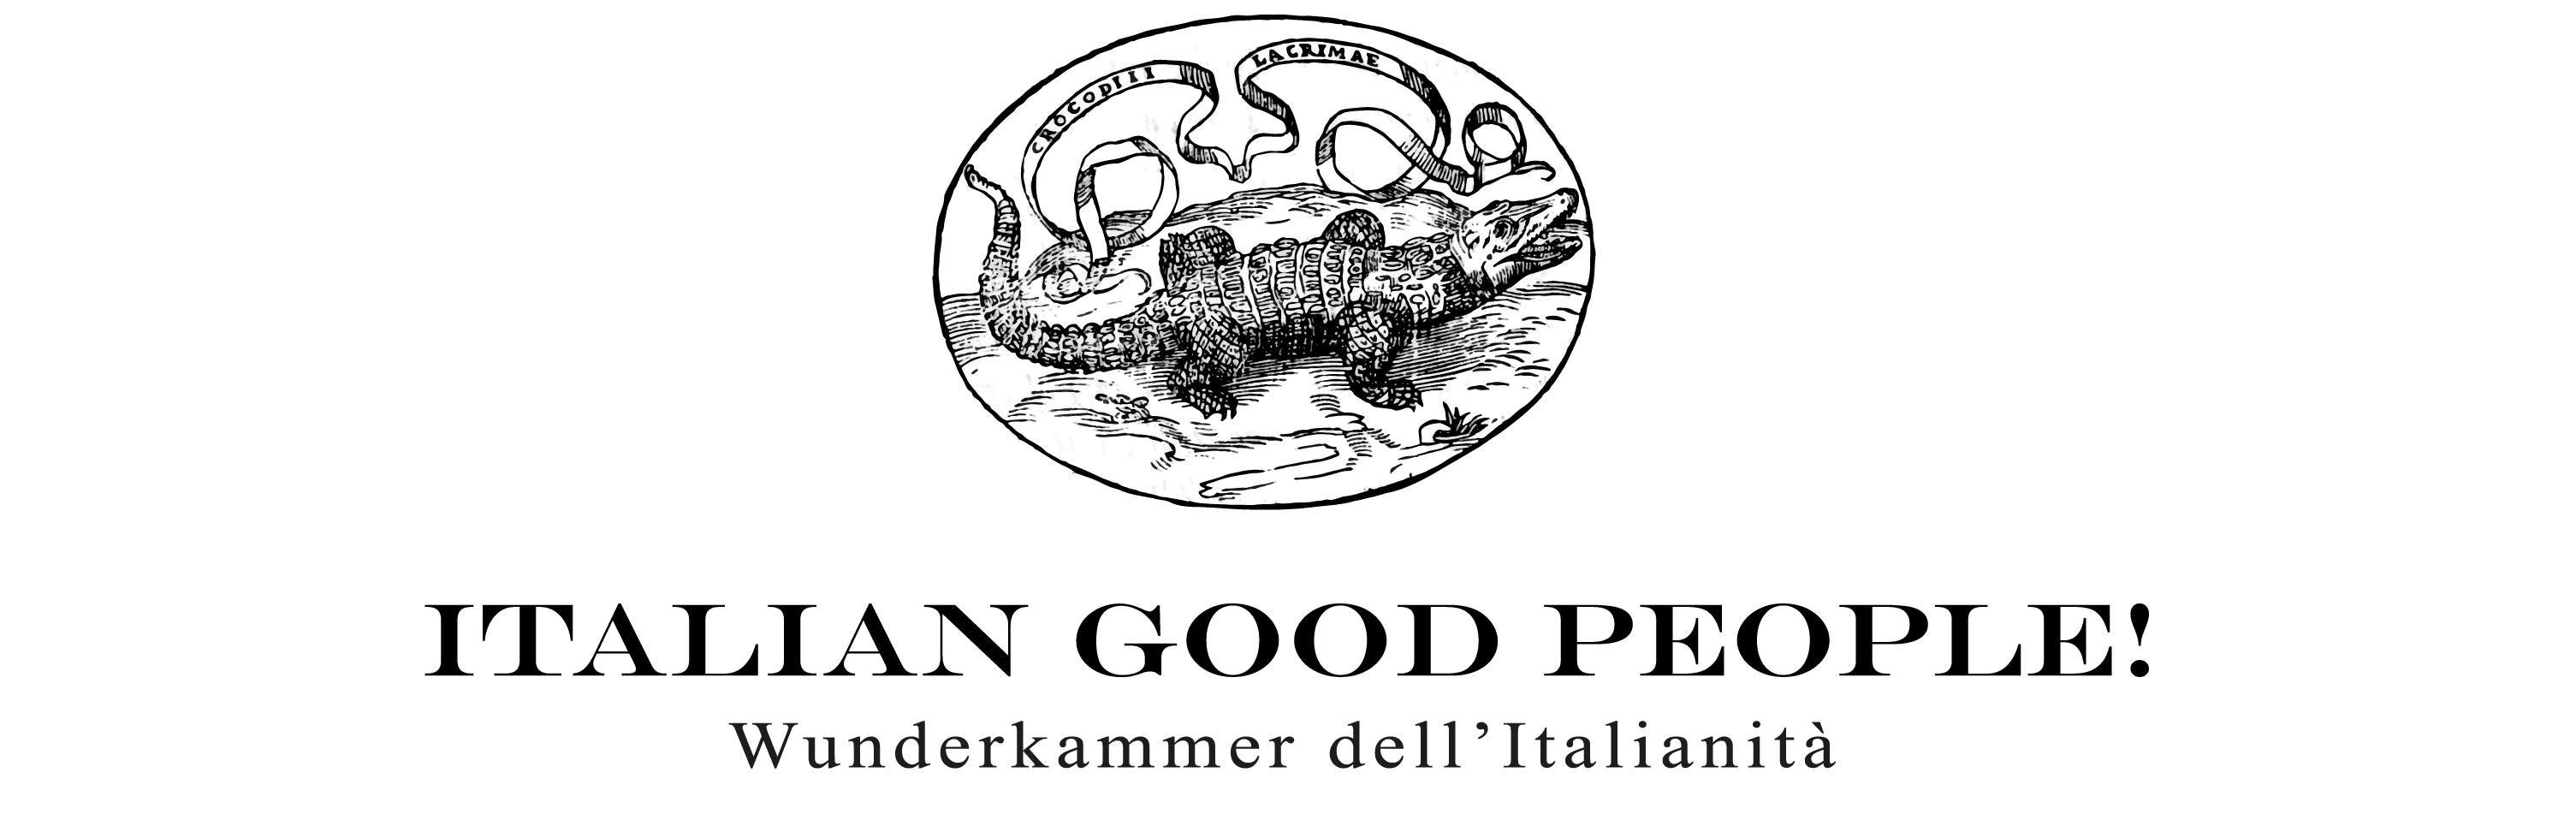 Italian Good people